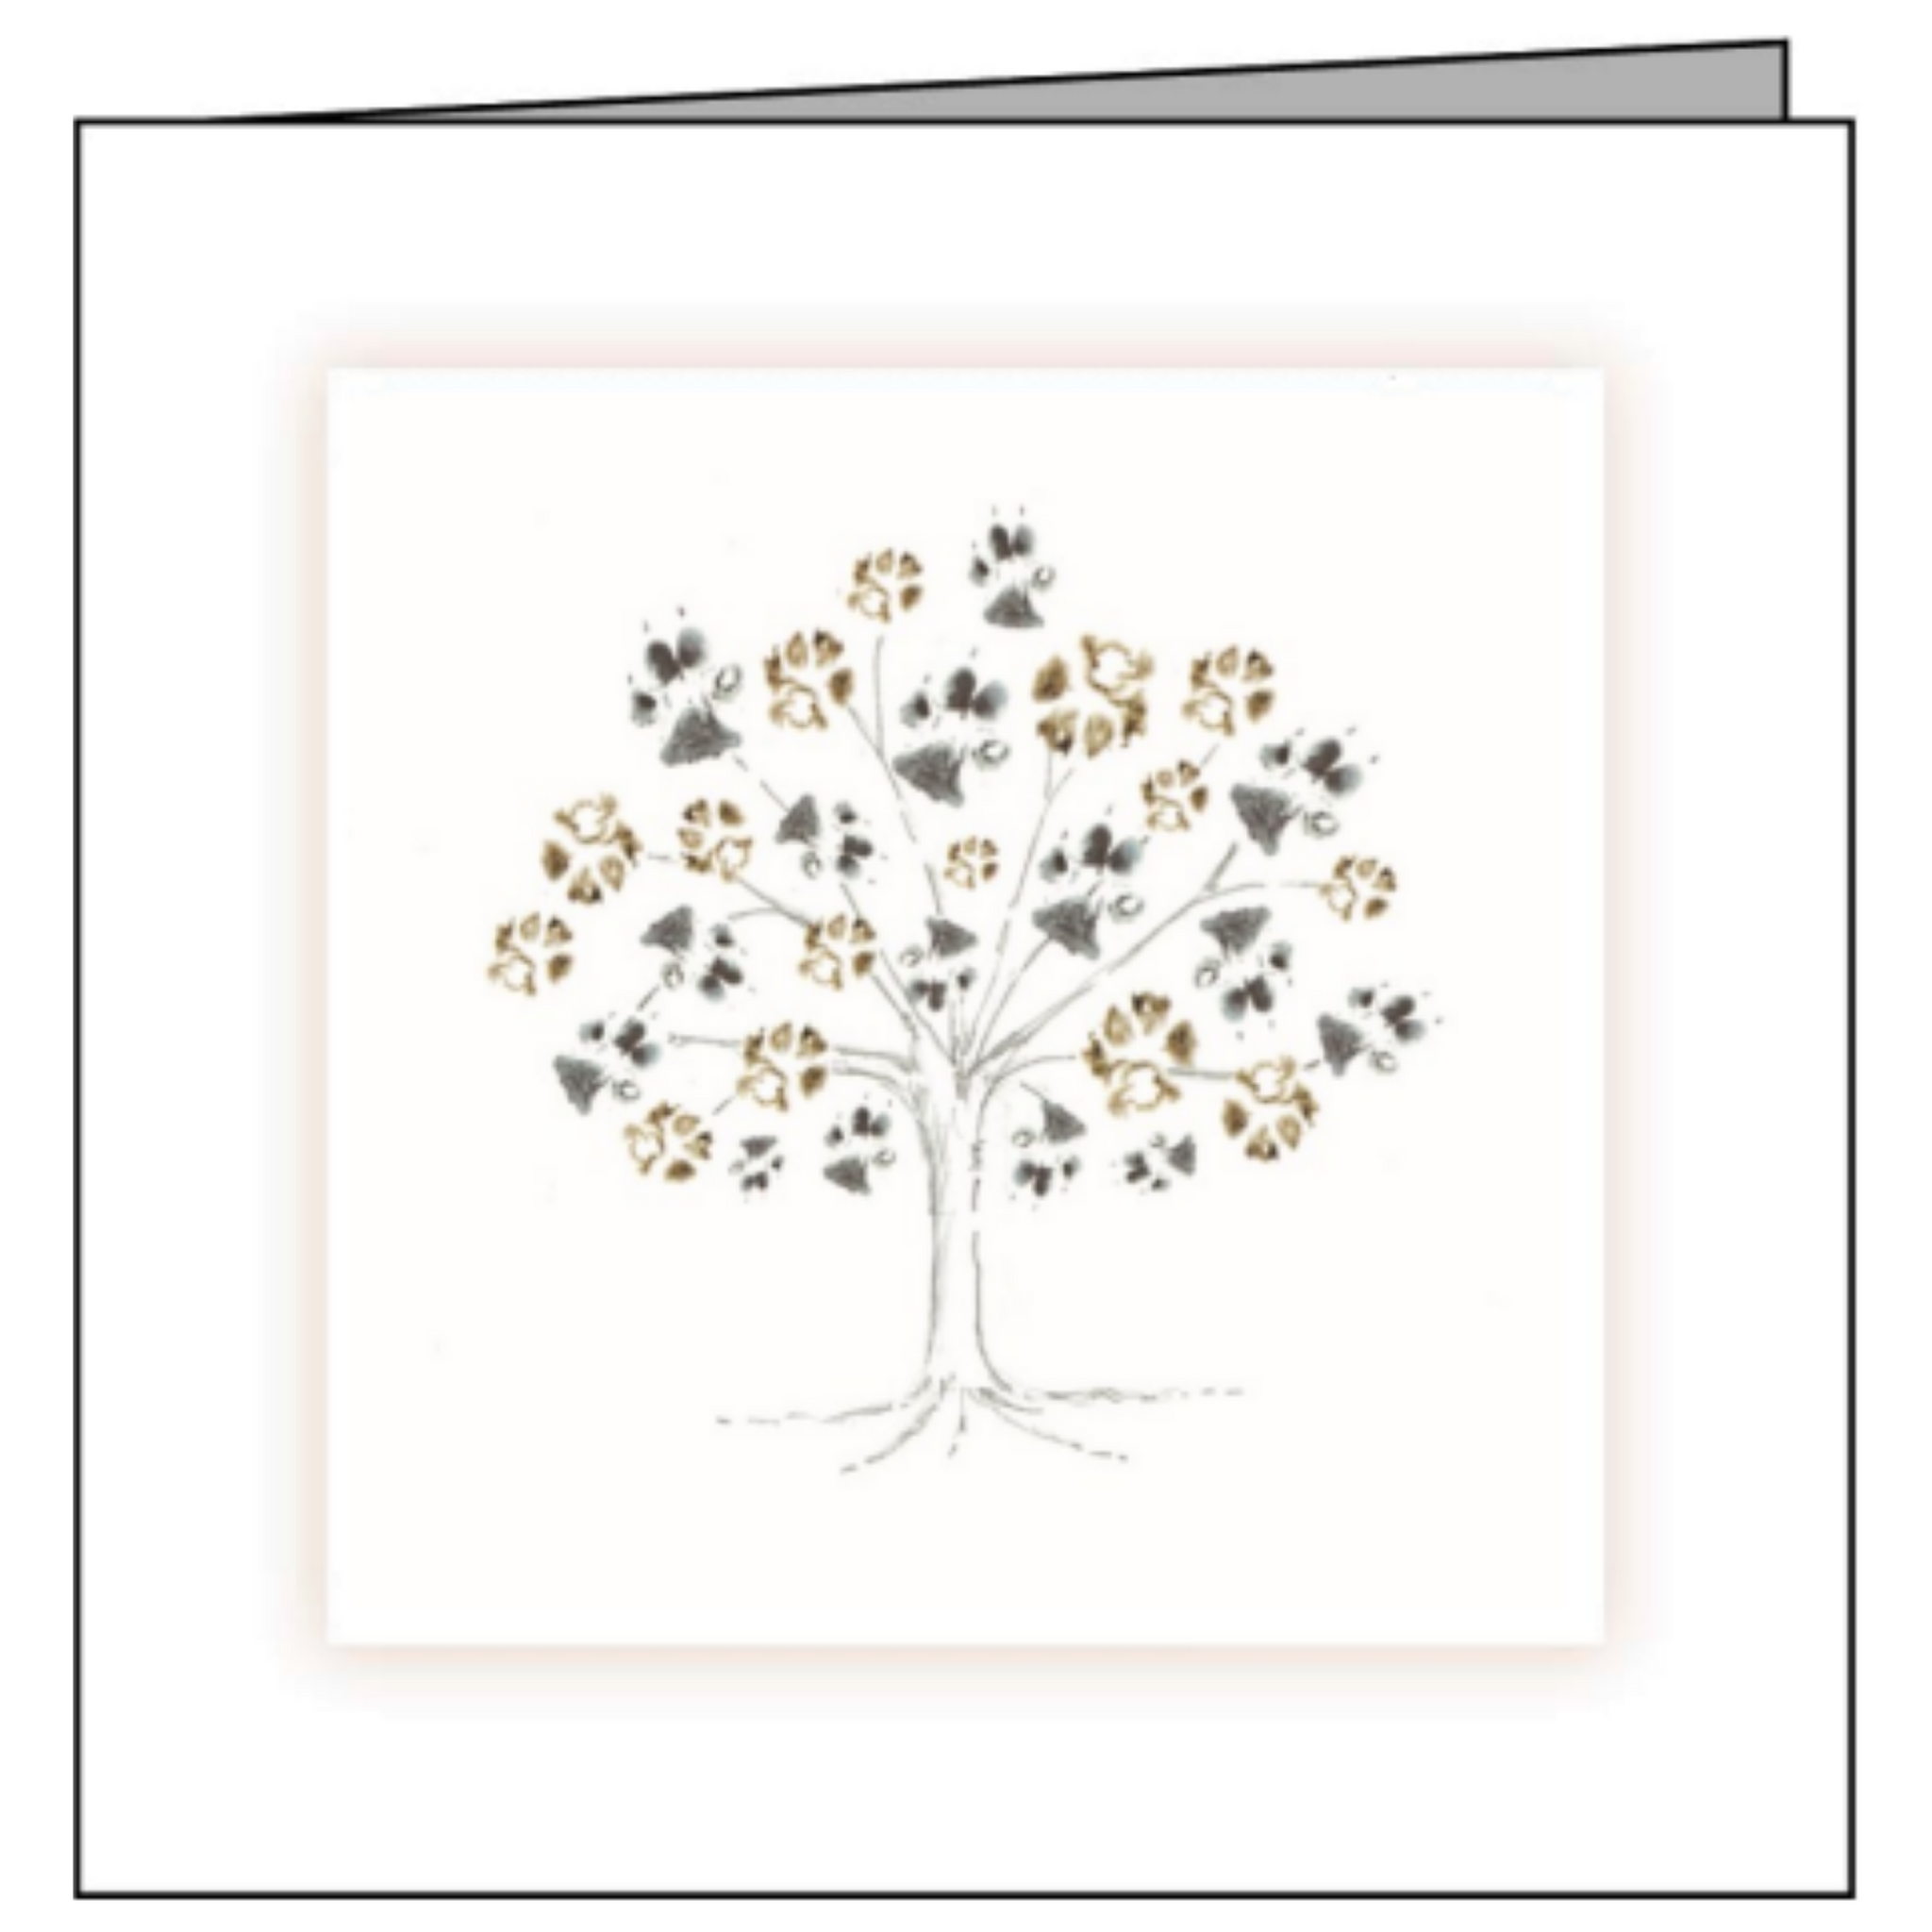 Animal Hospital Sympathy Card - Tree of Paws